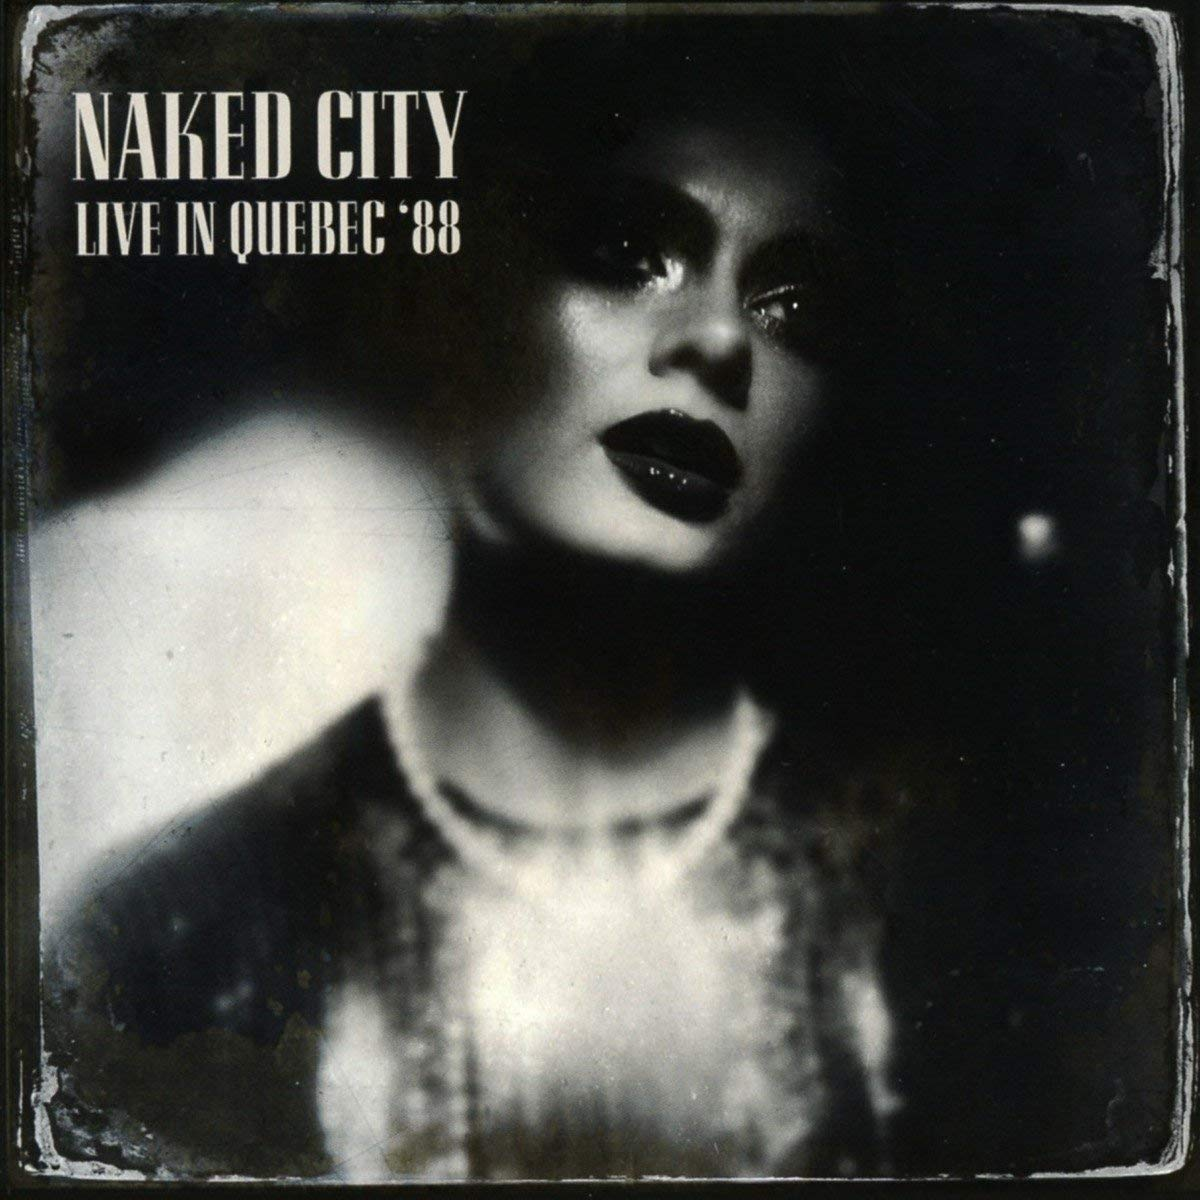 NAKED CITY - Live in Quebec 88 cover